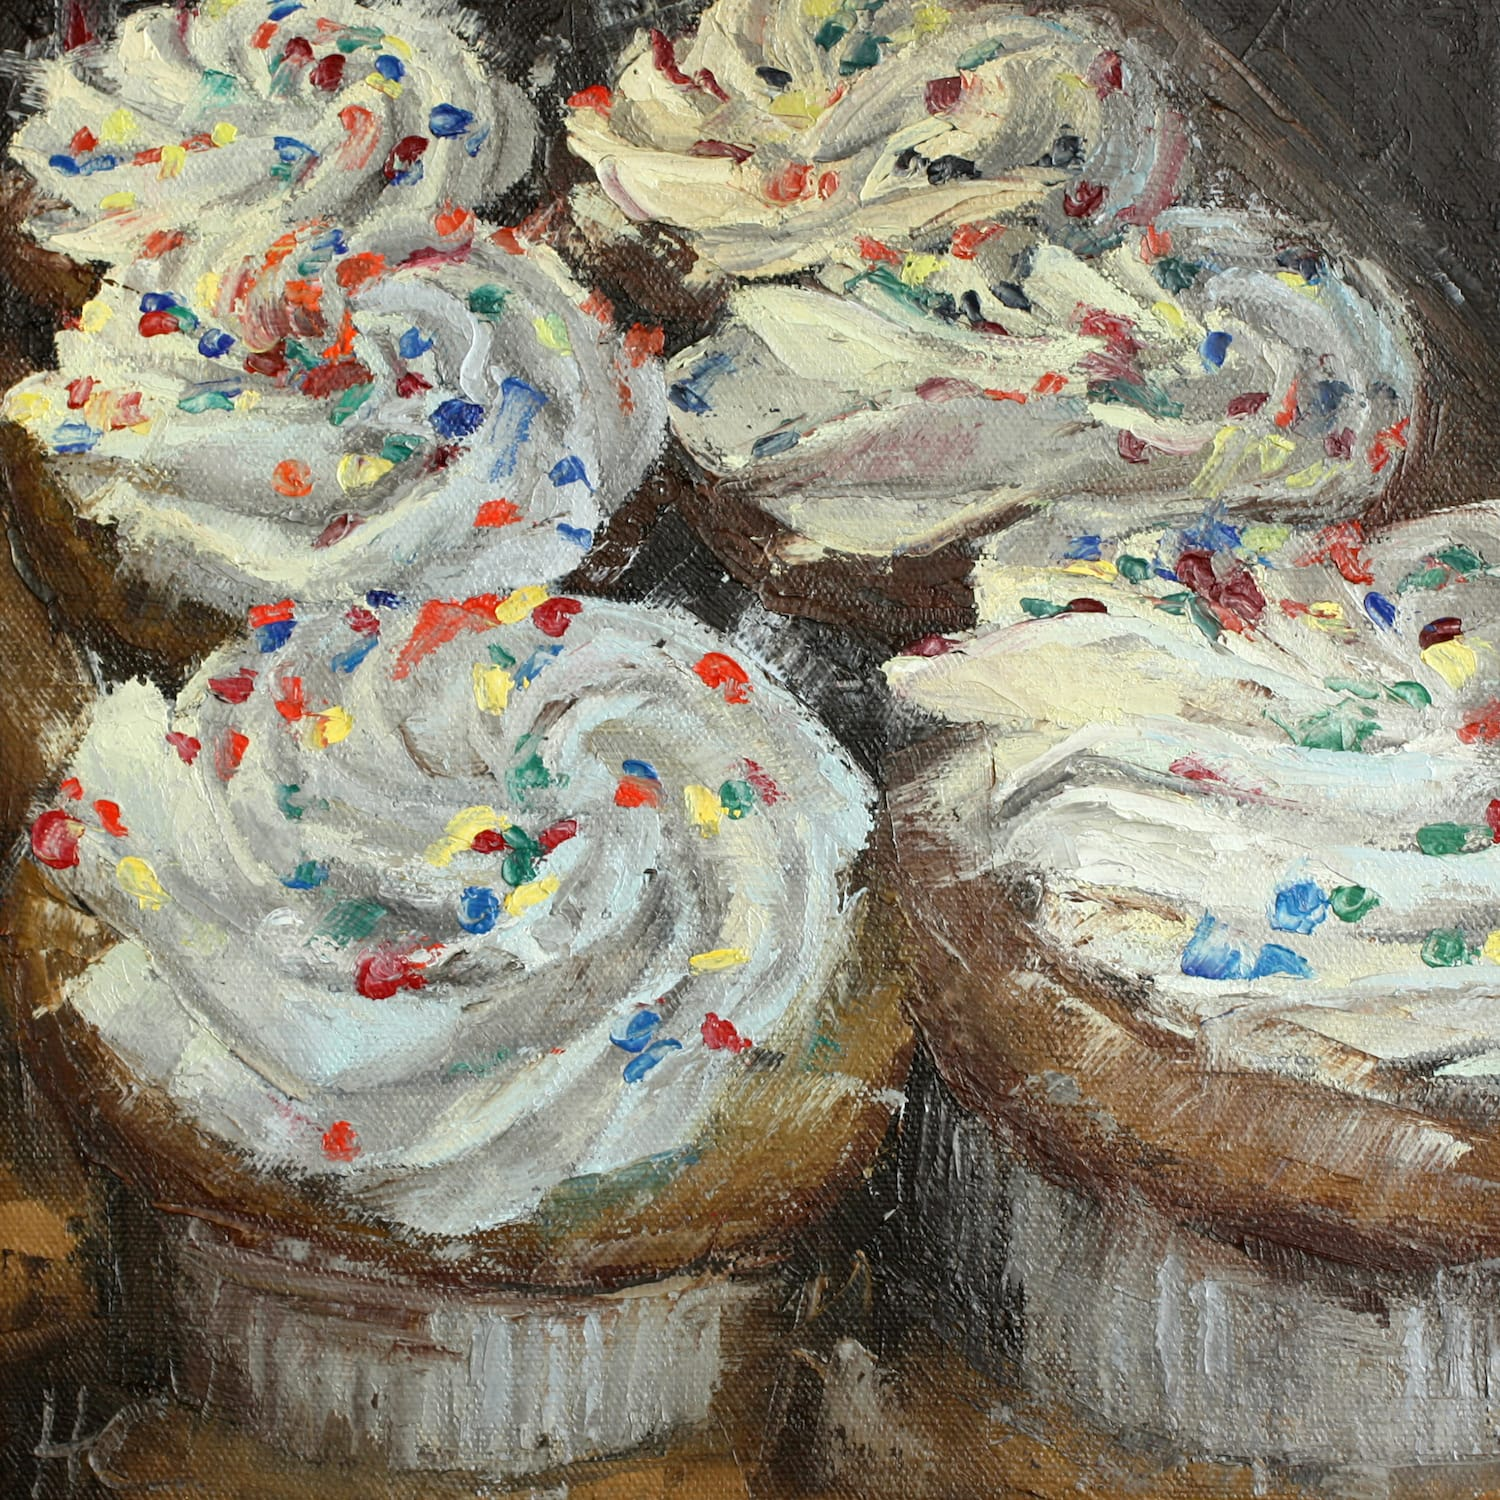 """<span class=""""link fancybox-details-link""""><a href=""""/artists/34-heather-capen/works/48-heather-capen-vanilla-cupcakes/"""">View Detail Page</a></span><div class=""""artist""""><strong>Heather Capen</strong></div> <div class=""""title""""><em>Vanilla Cupcakes</em></div> <div class=""""medium"""">Oil on Canvas </div> <div class=""""dimensions"""">10 x 10 inches </div>"""